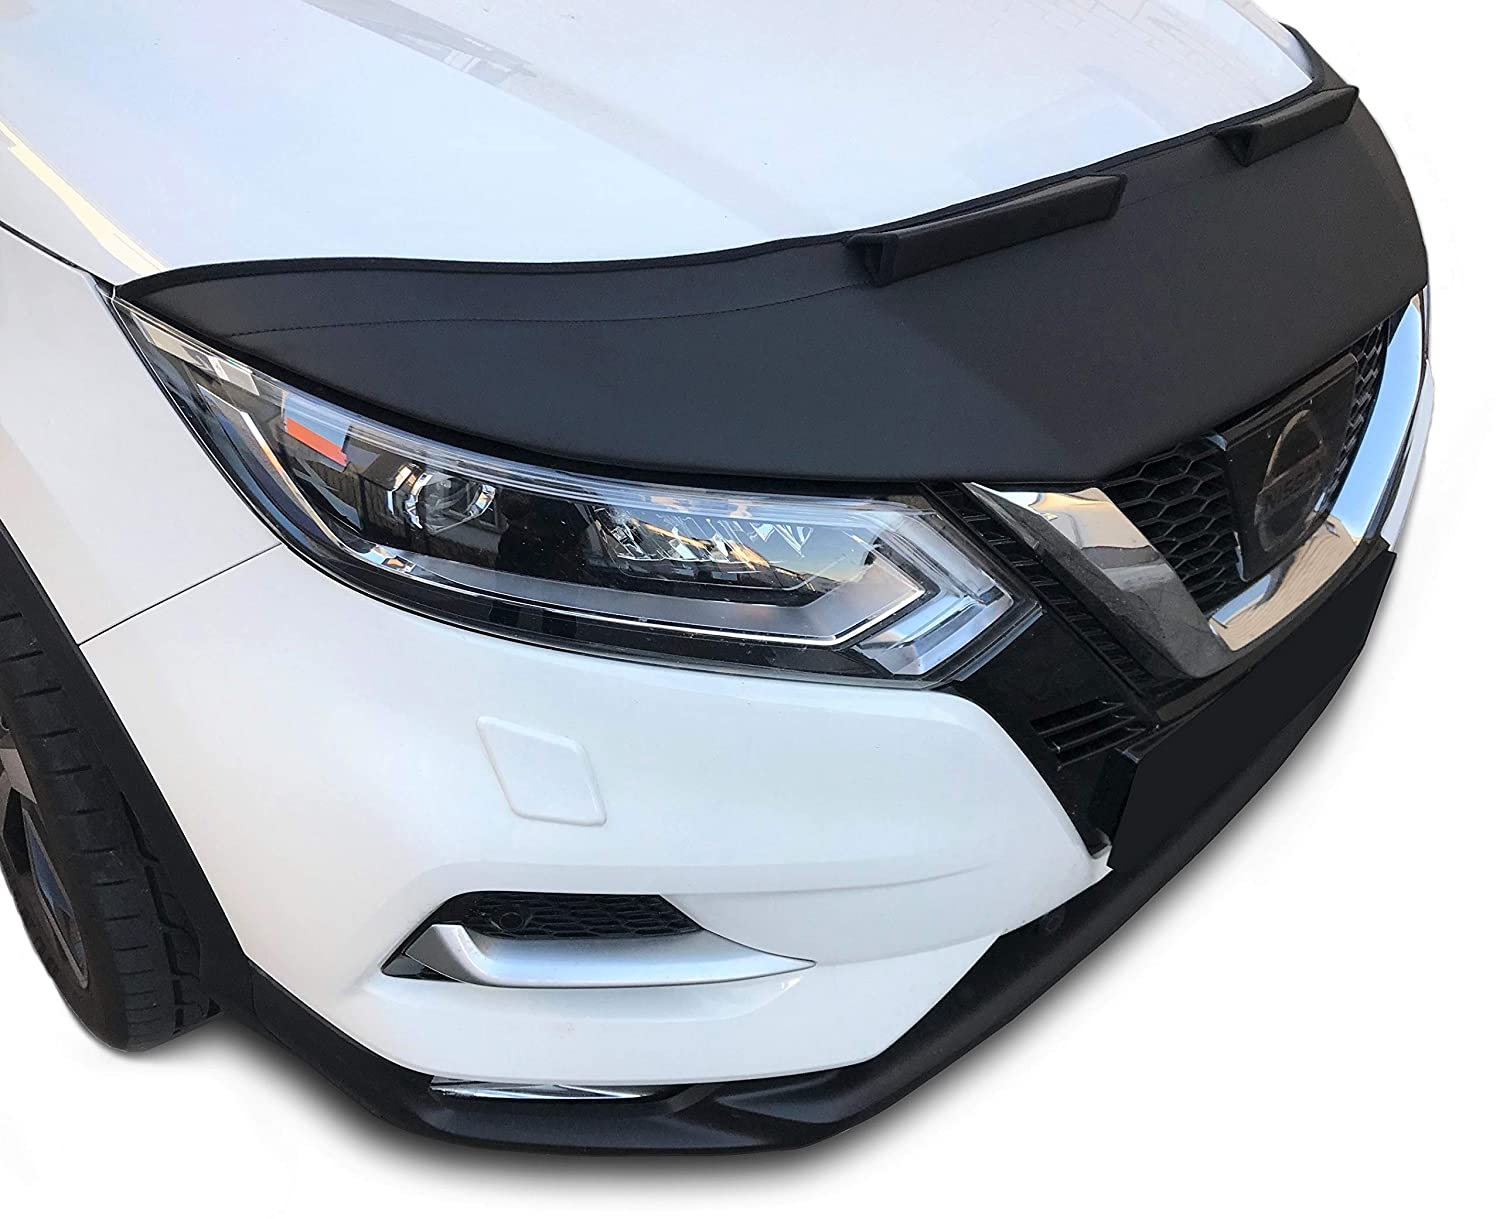 Hood Bra for Nissan Qashqai Bonnet Car Front End Cover Nose Mask Stoneguard Protector TUNING